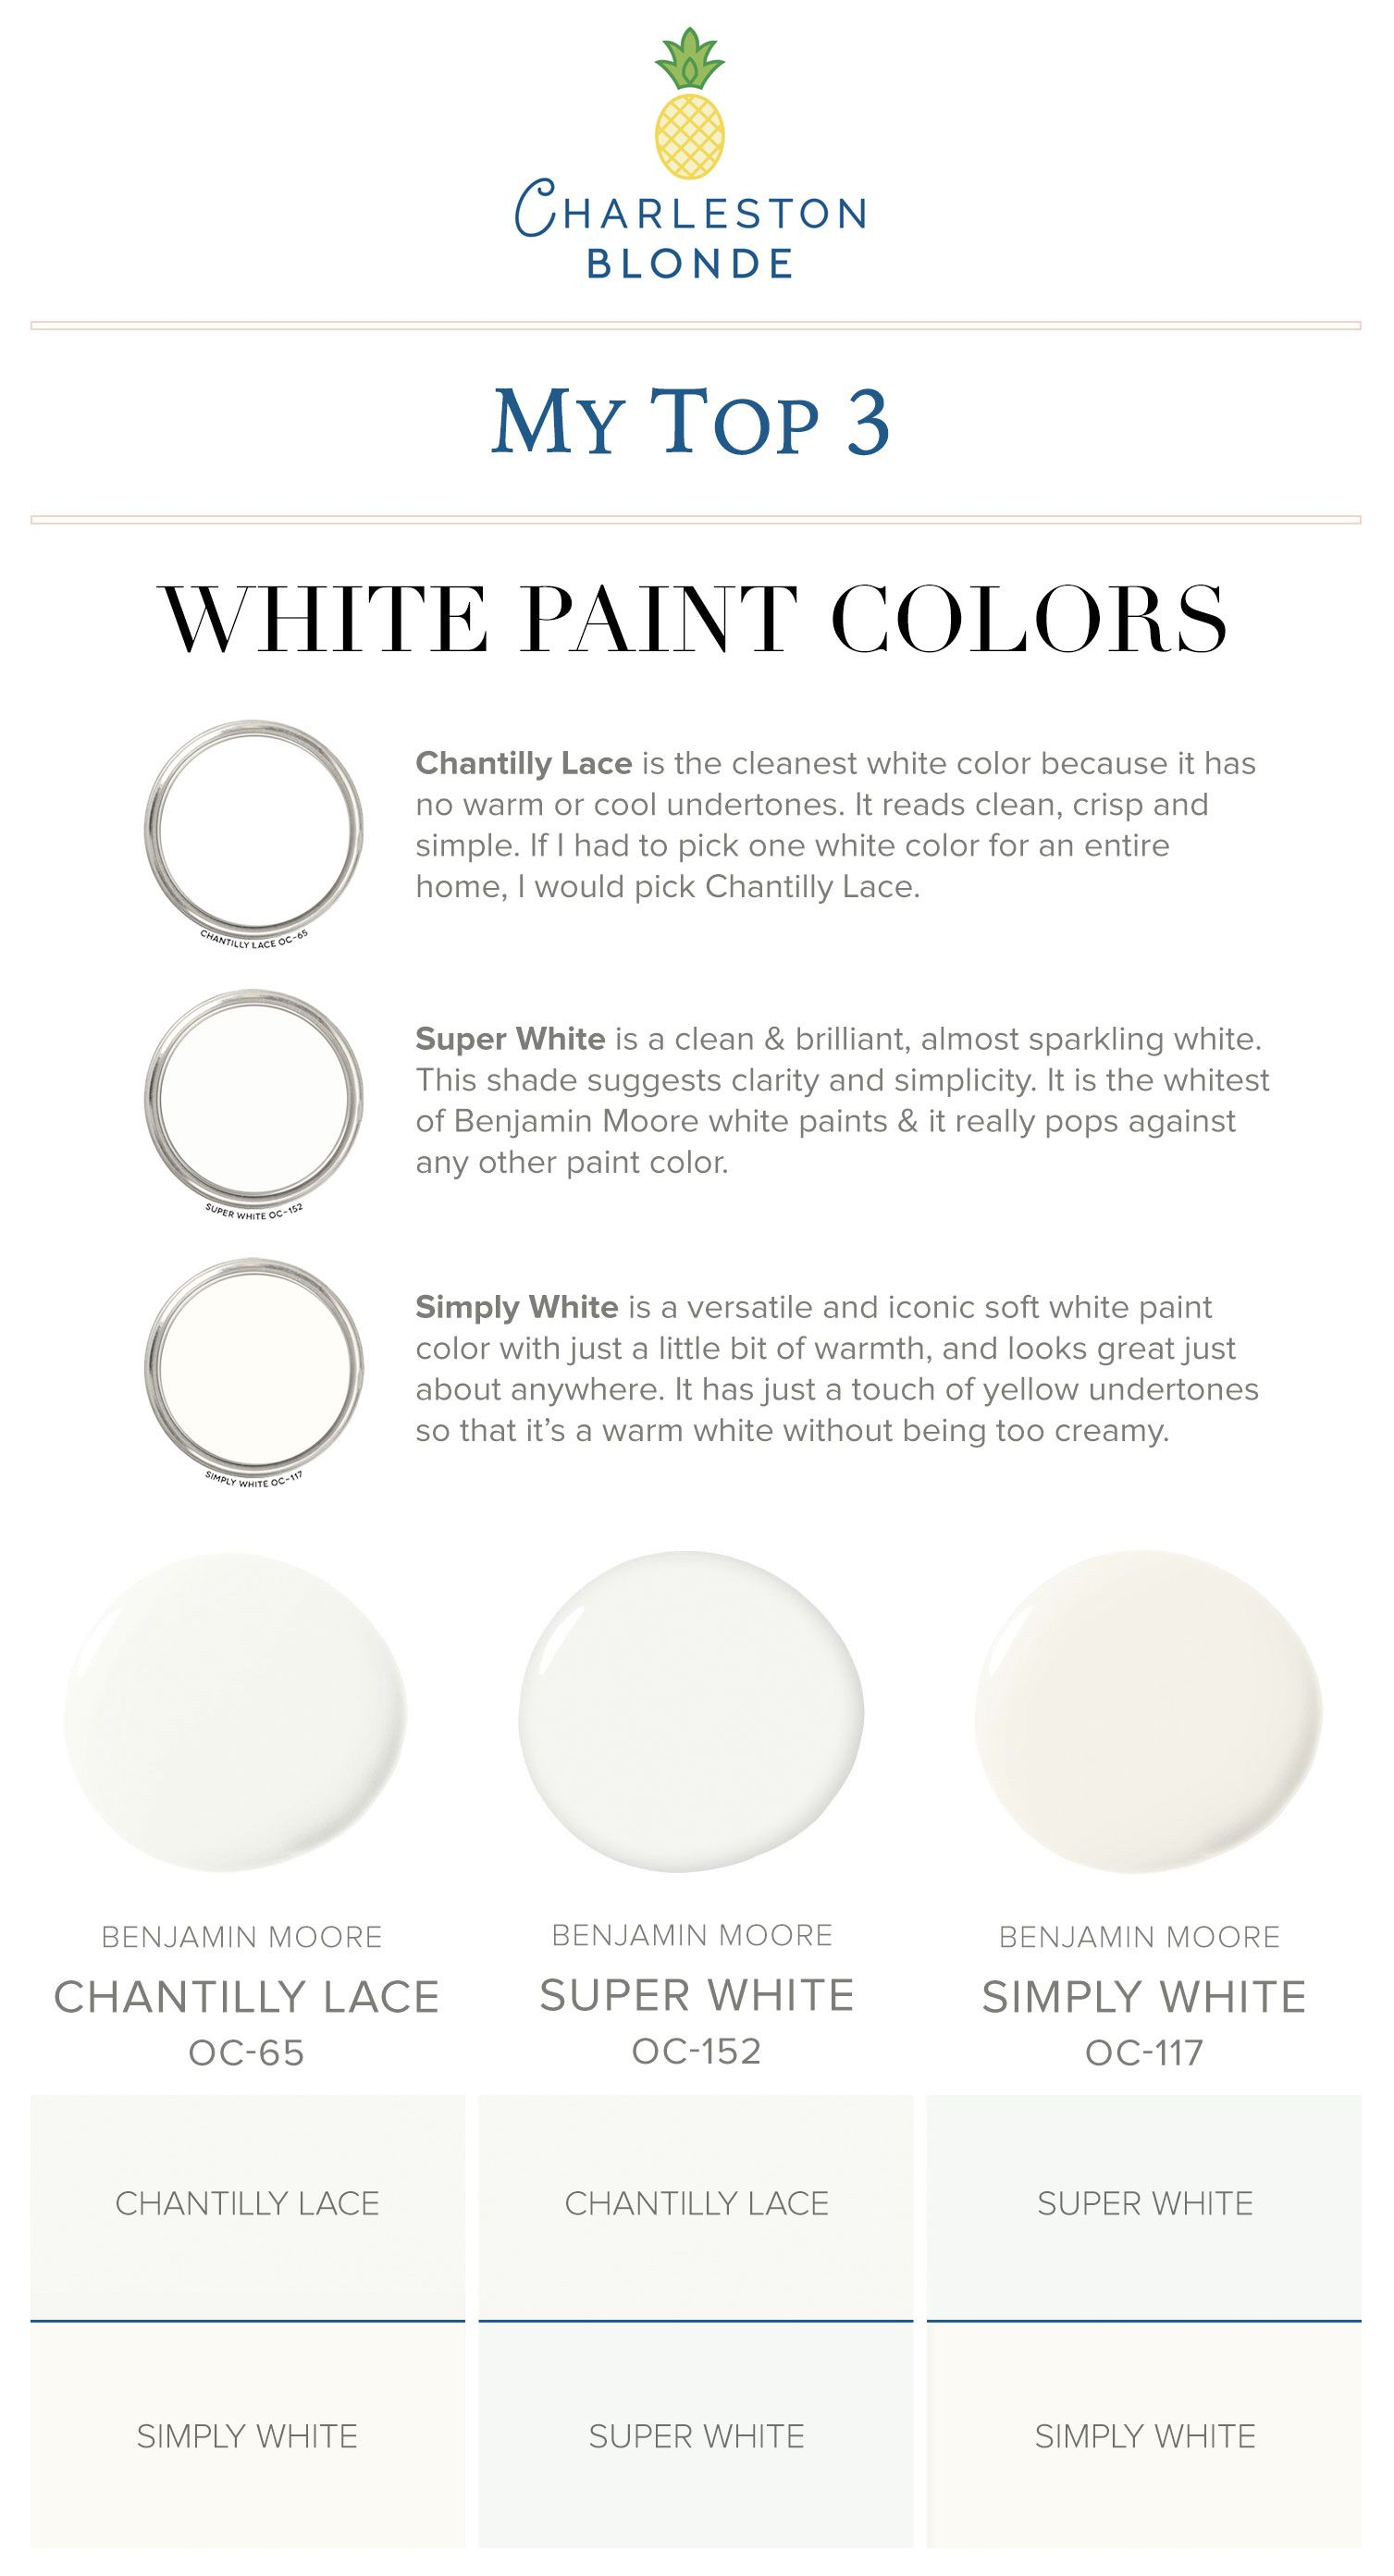 Favorite White Interior Paint Colors | Charleston Blonde